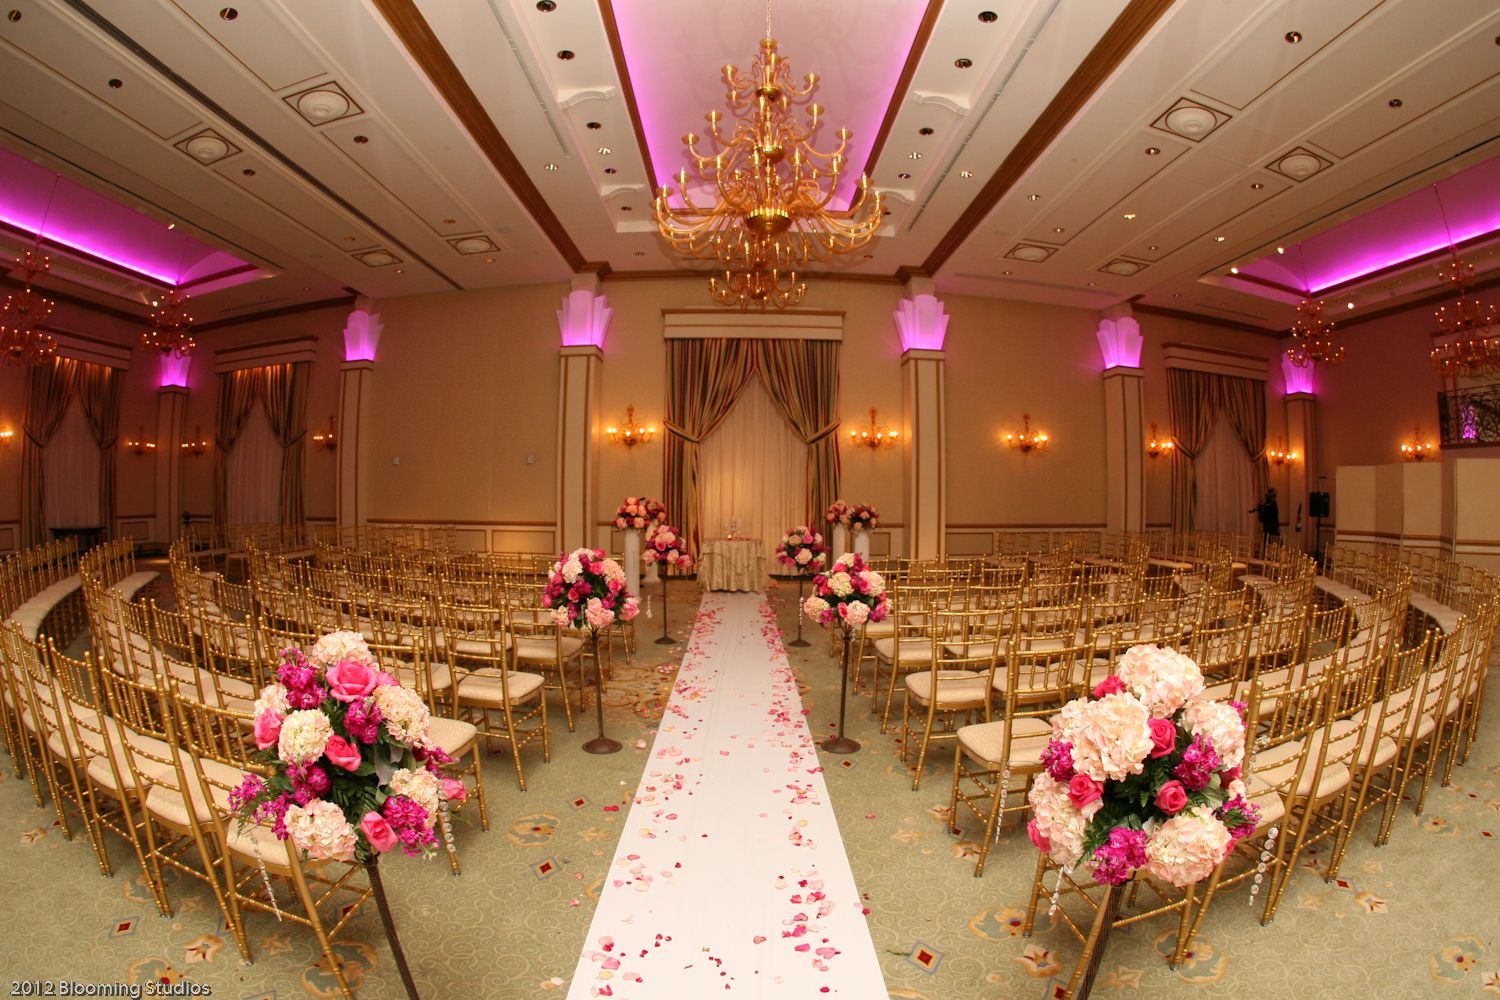 The Grand Ballroom with different LED lighting